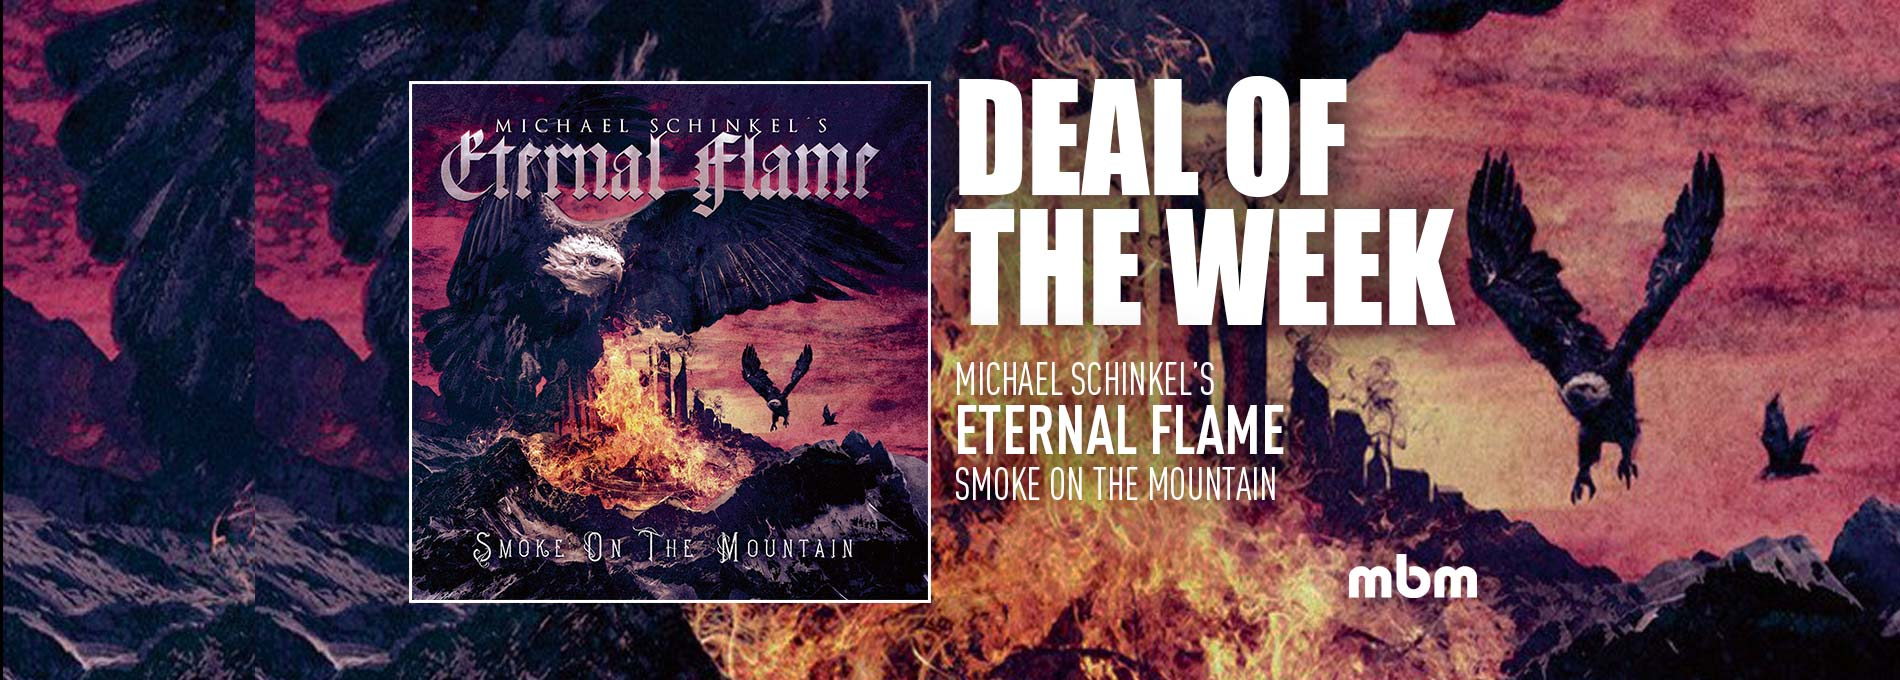 Deal Of The Week: MICHAEL SCHINKELS ETERNAL FLAME - Smoke On The Mountain